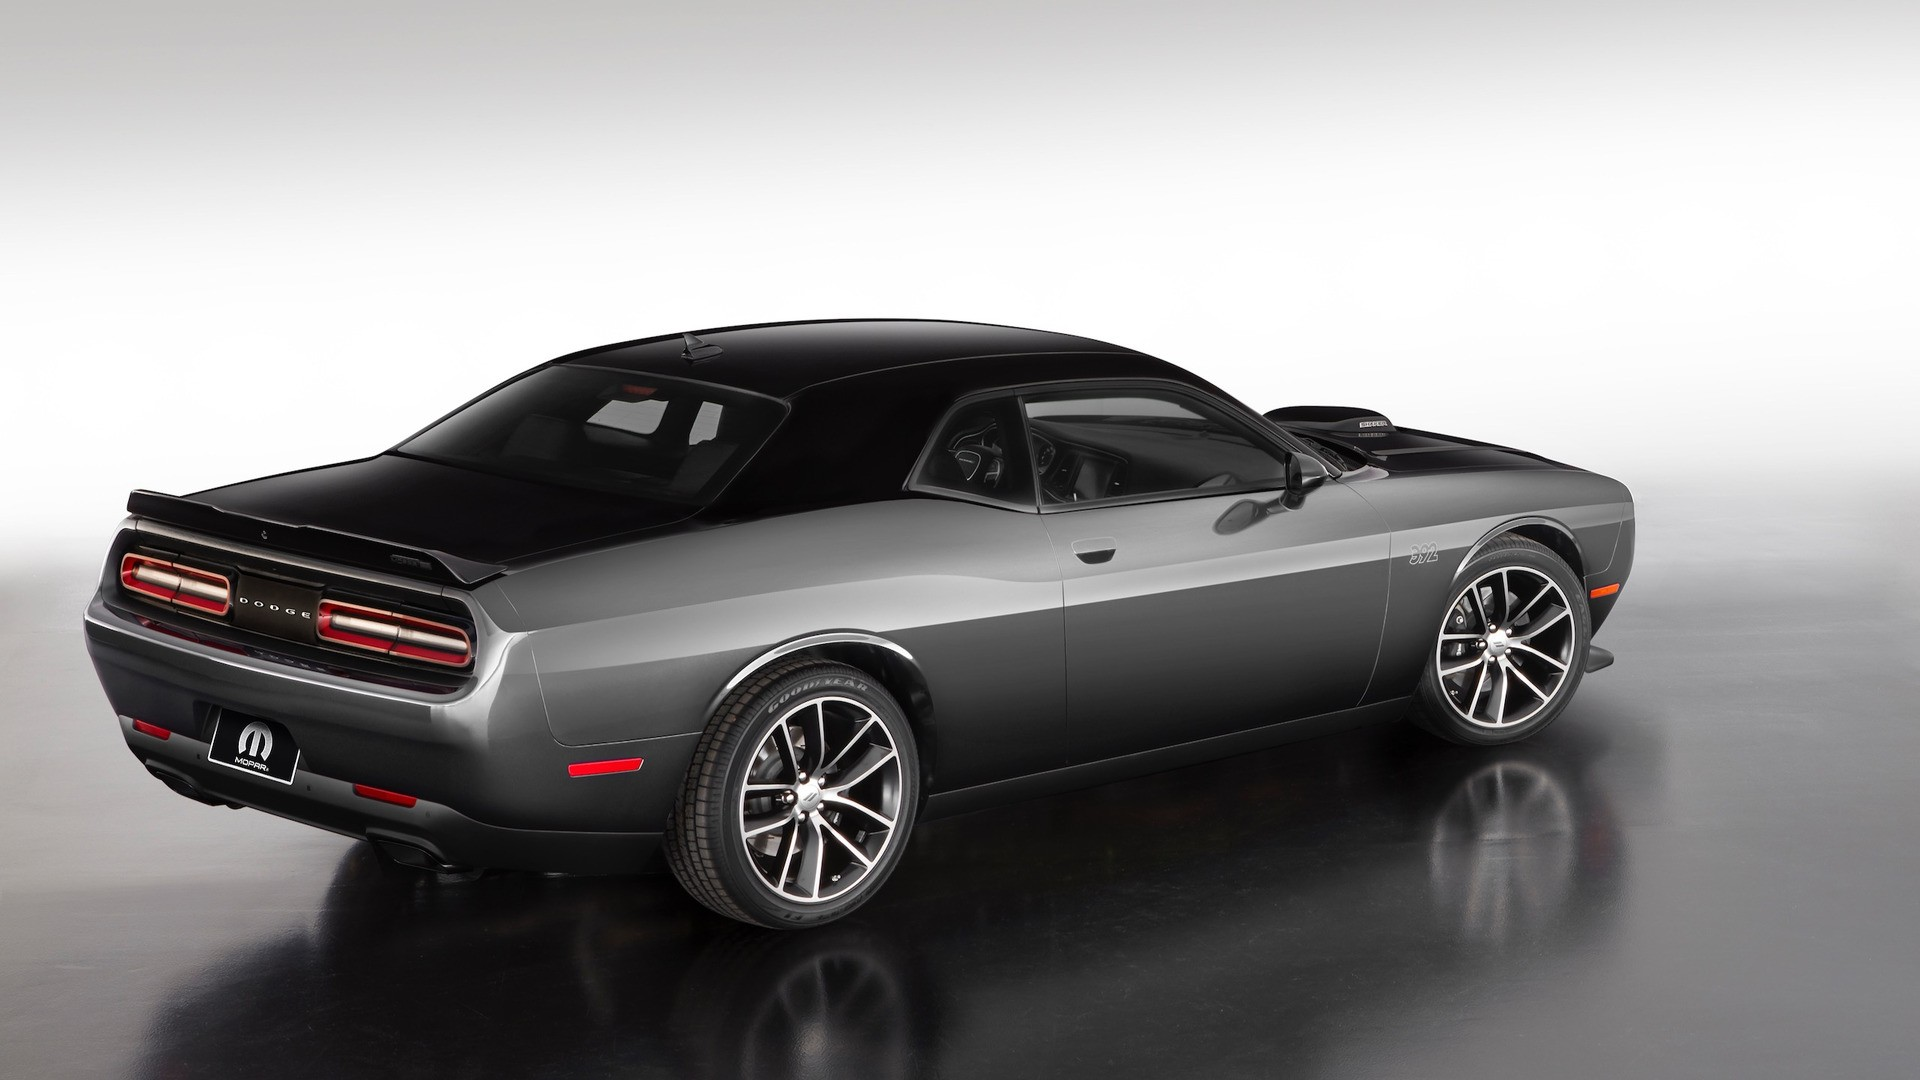 2017 dodge challenger gets special edition for mopar anniversary autoevolution. Black Bedroom Furniture Sets. Home Design Ideas